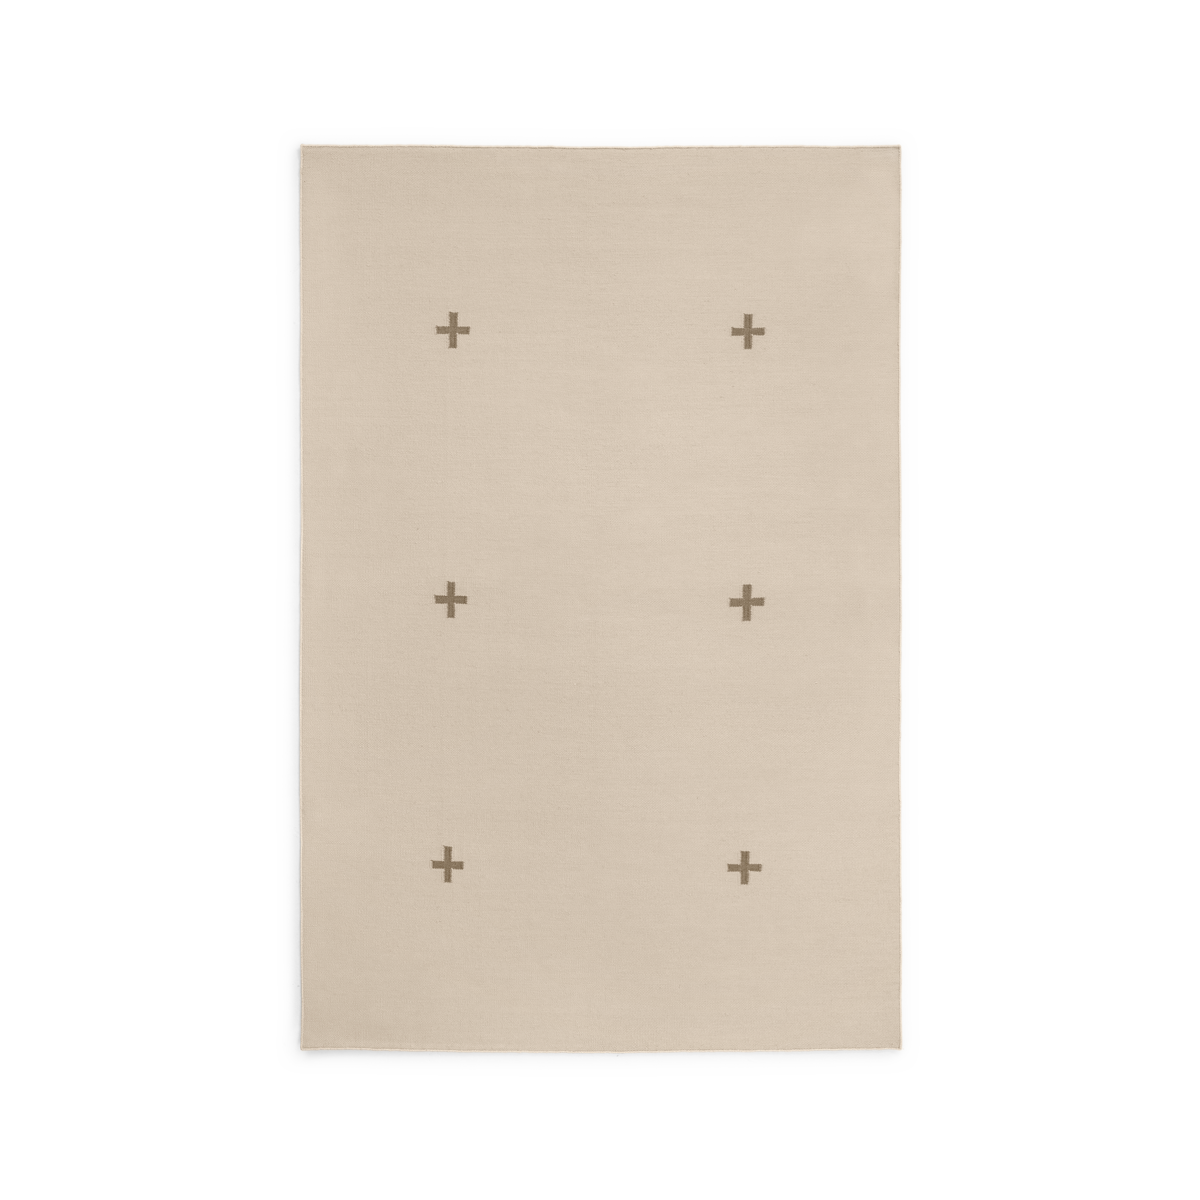 Product image of the flatweave rug Plus in the color Sand. The rug itself is a sand color with a graphic plus-sign pattern in a darker shade.